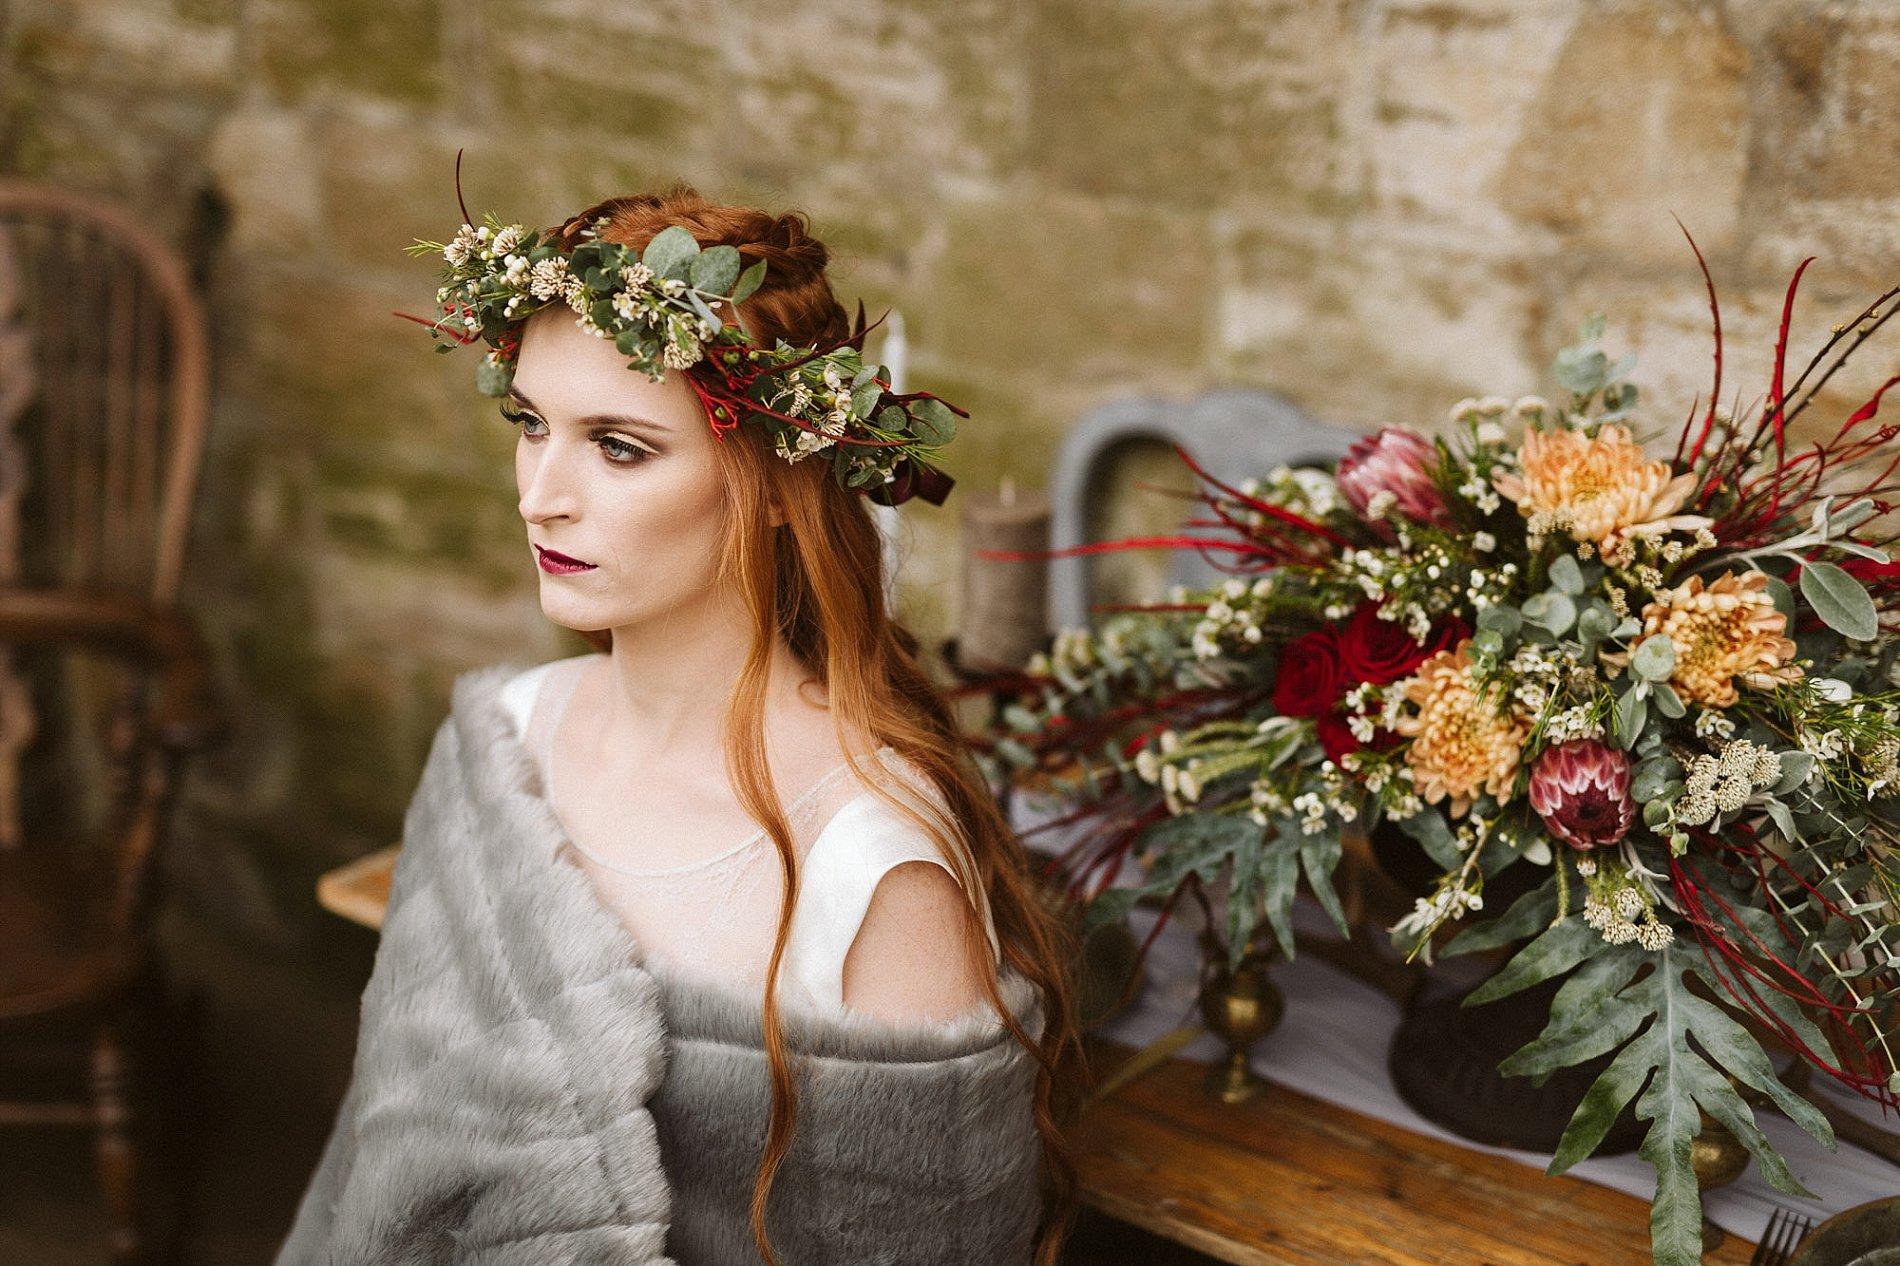 Game of Thrones Creative Bridal Shoot (c) Freya Raby (18)